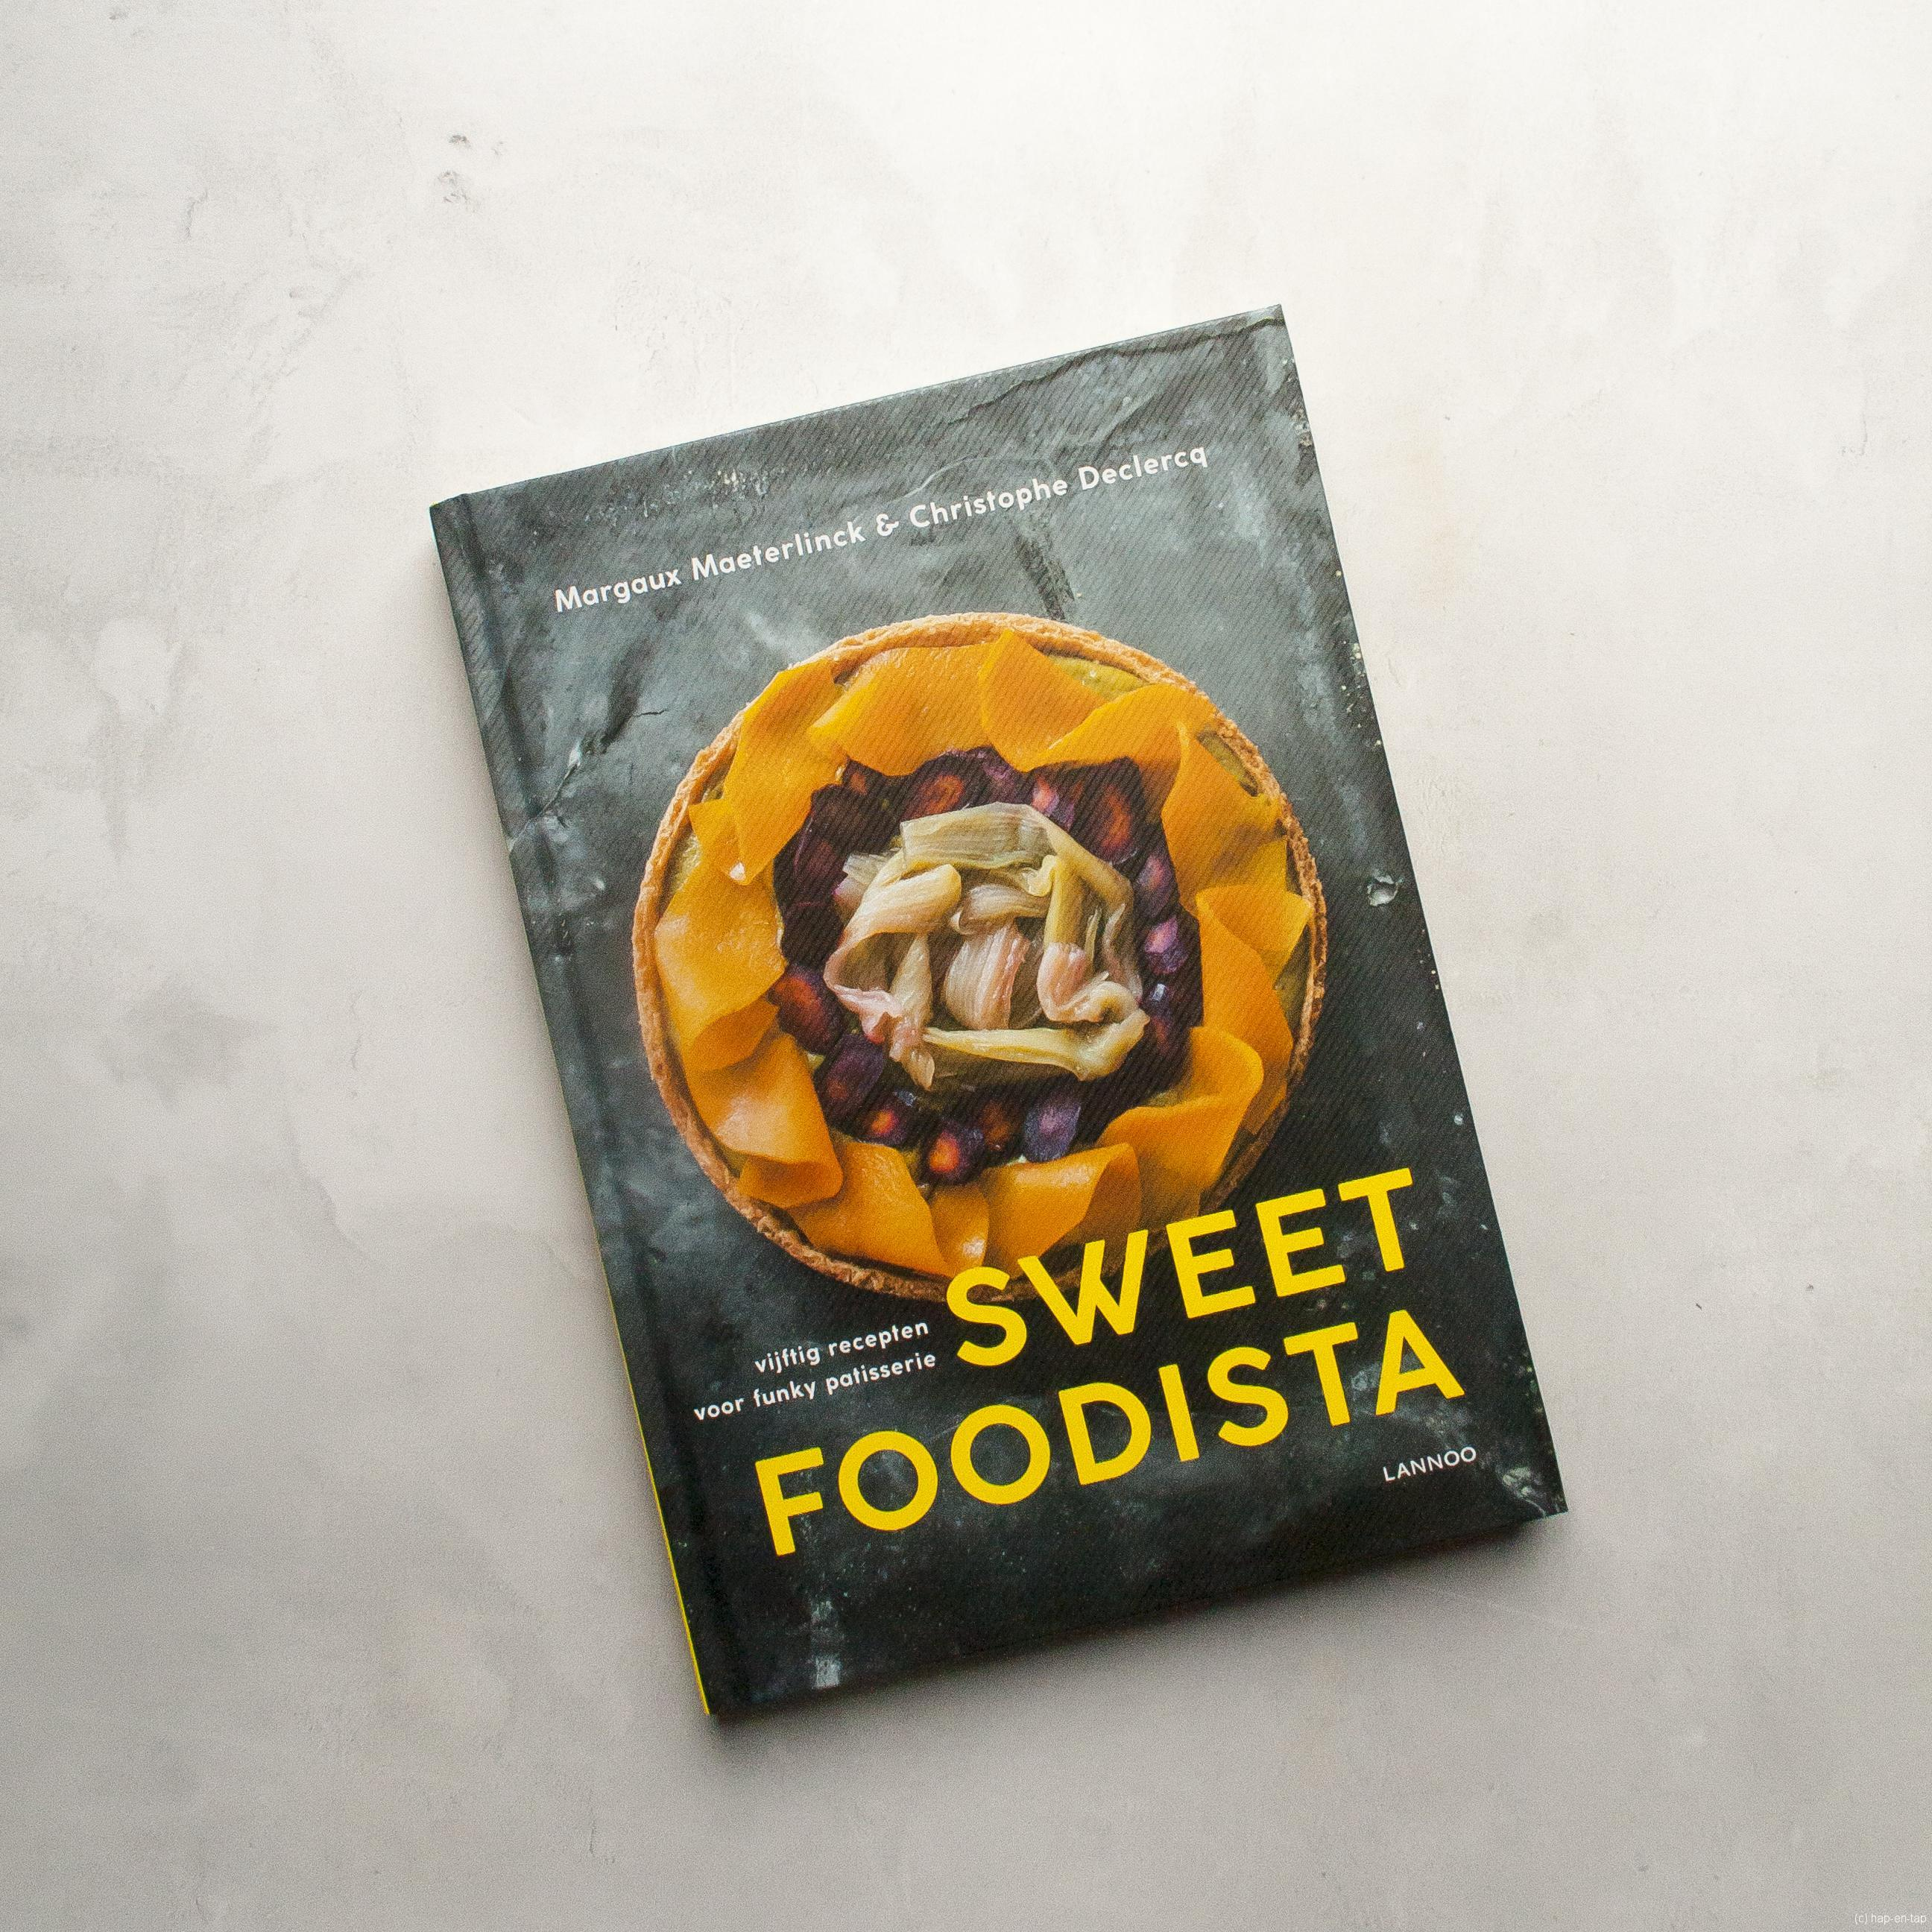 Margaux Maeterlinck & Christophe Declercq, Sweet Foodista